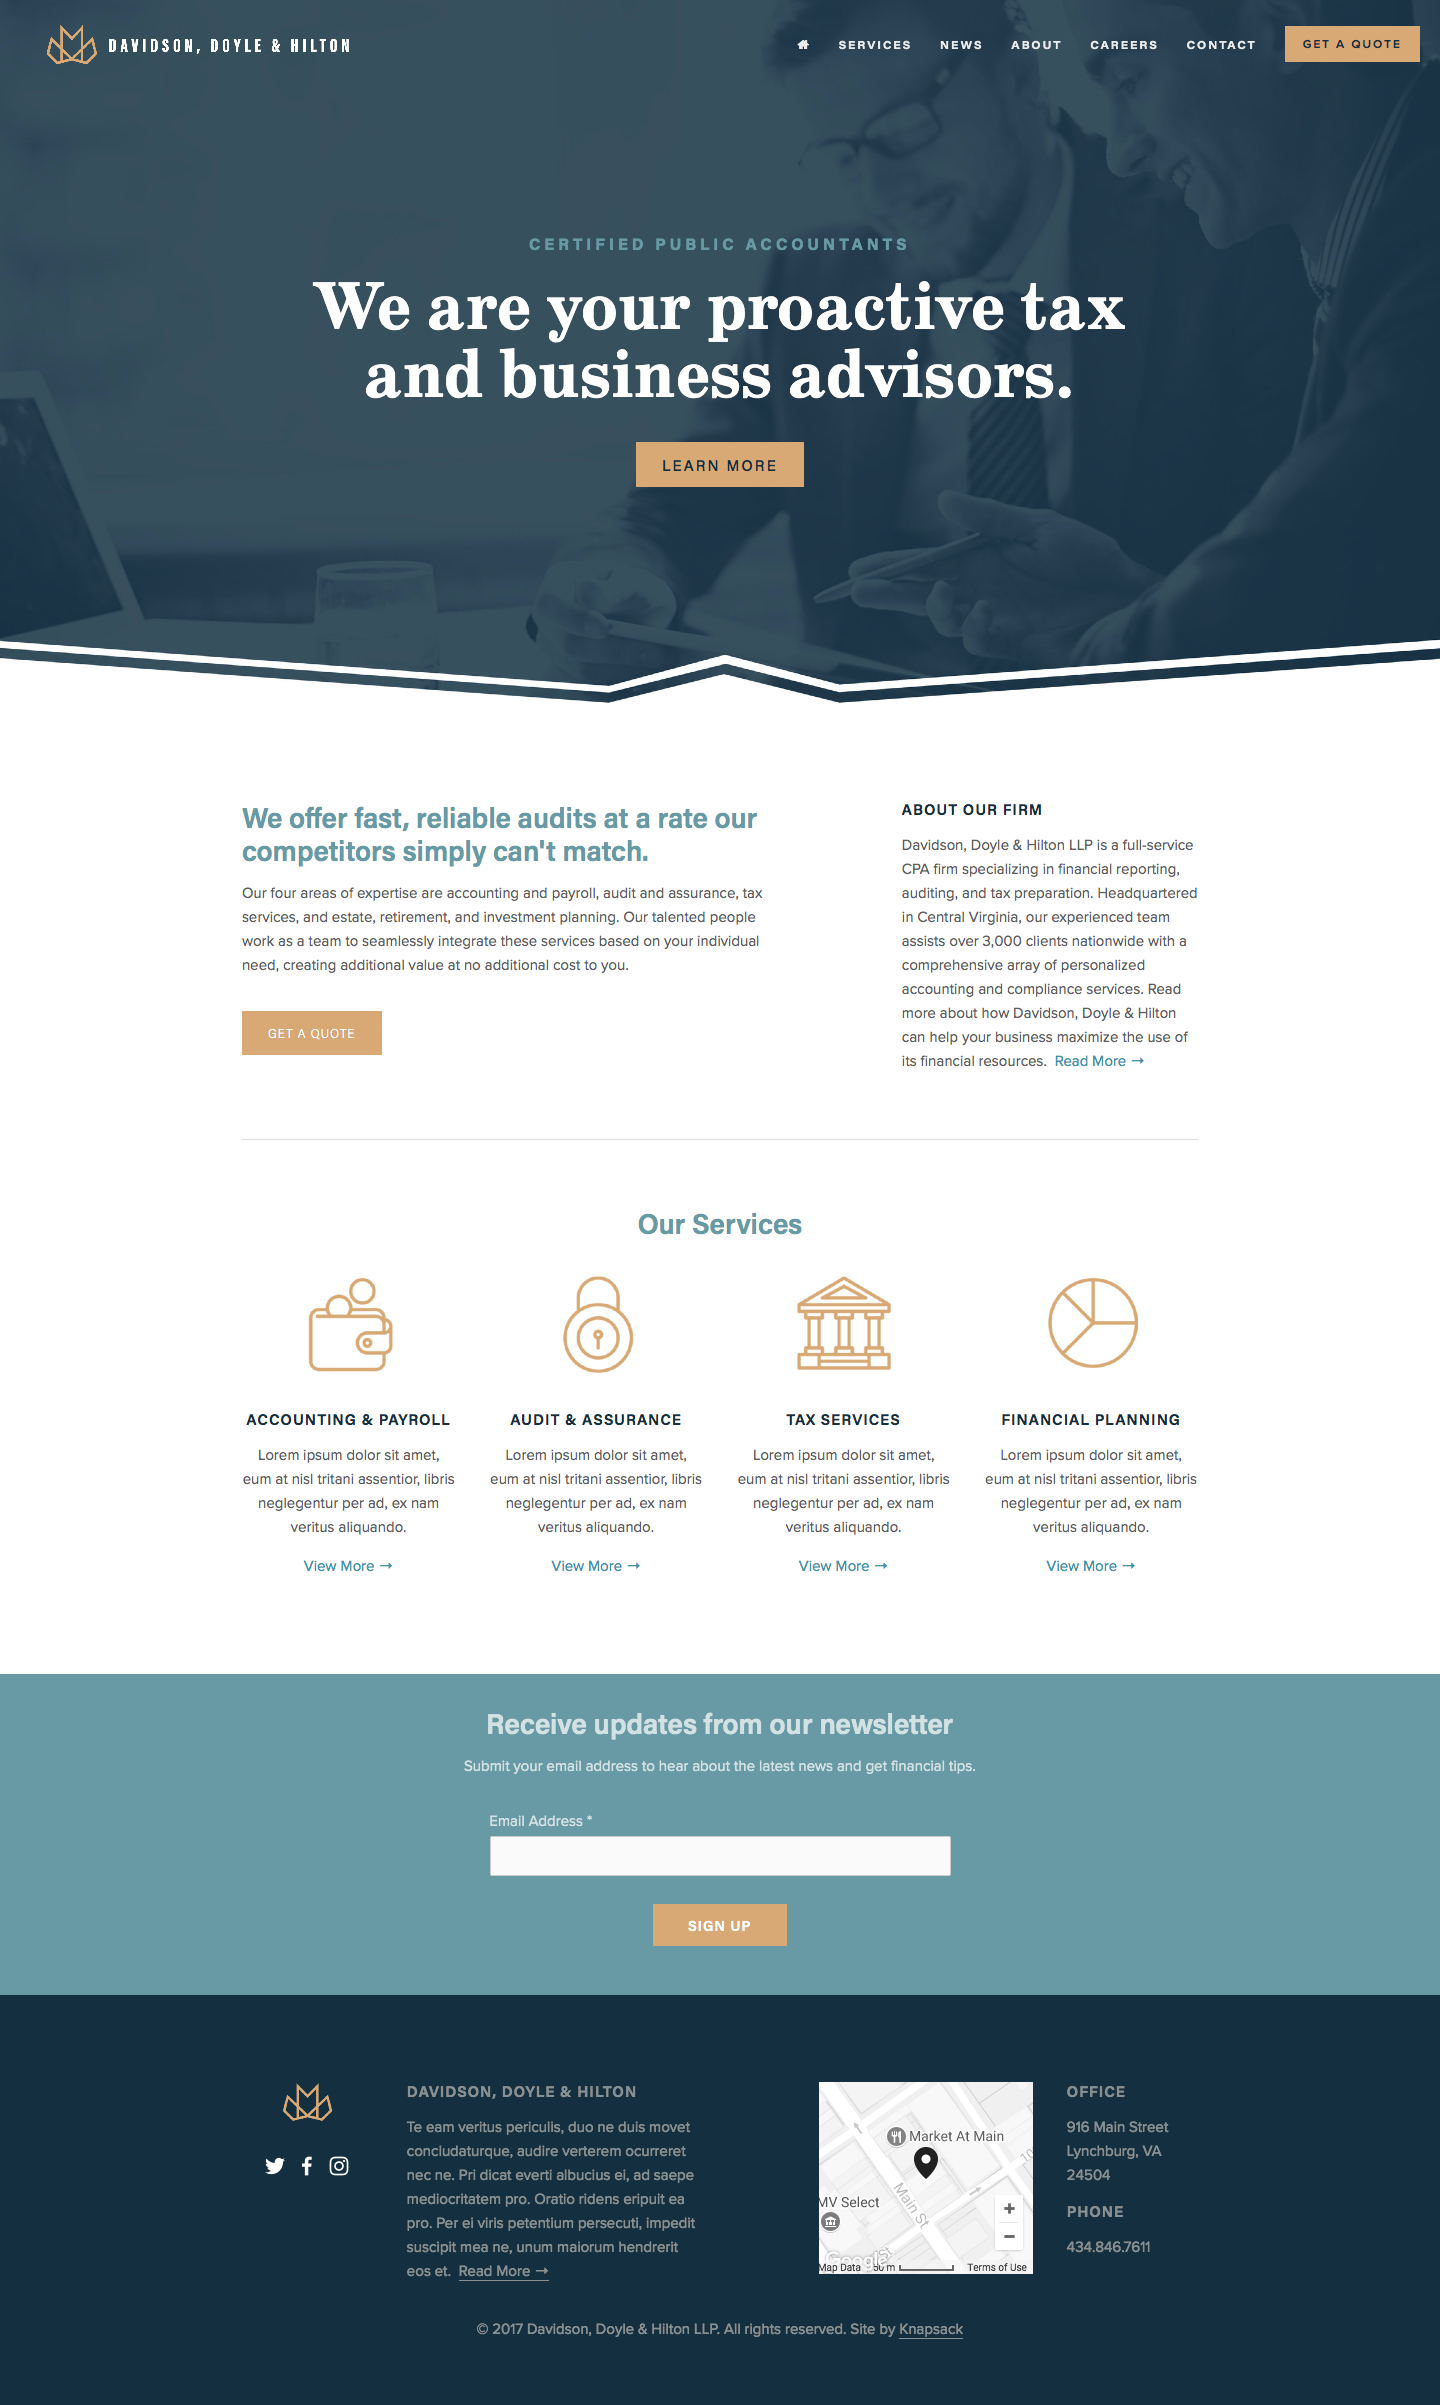 A website home page design for a tax and business advising company ...